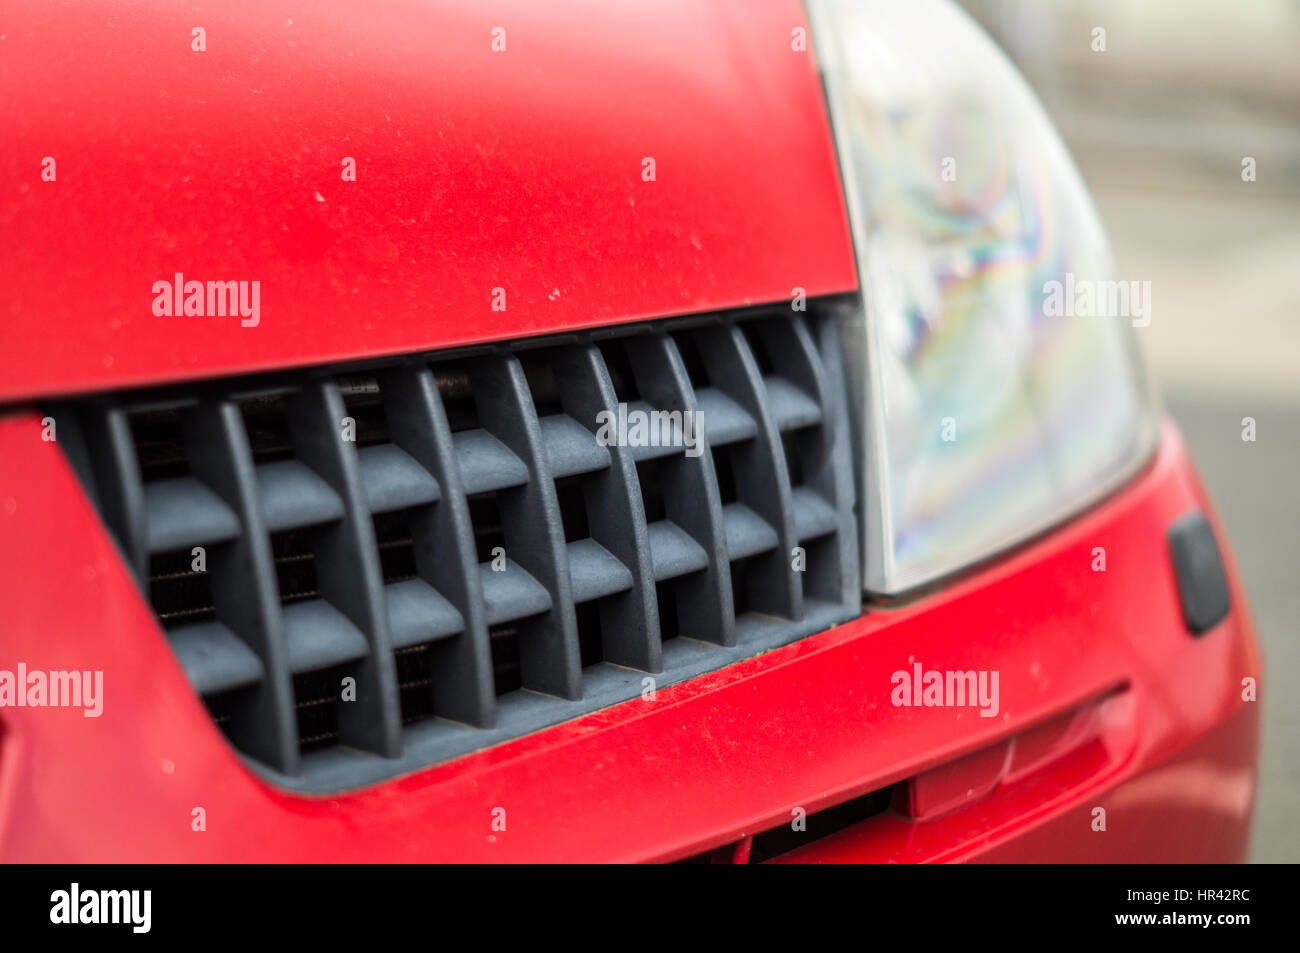 Faded plastic chequerboard grille on a Renault Clio. - Stock Image